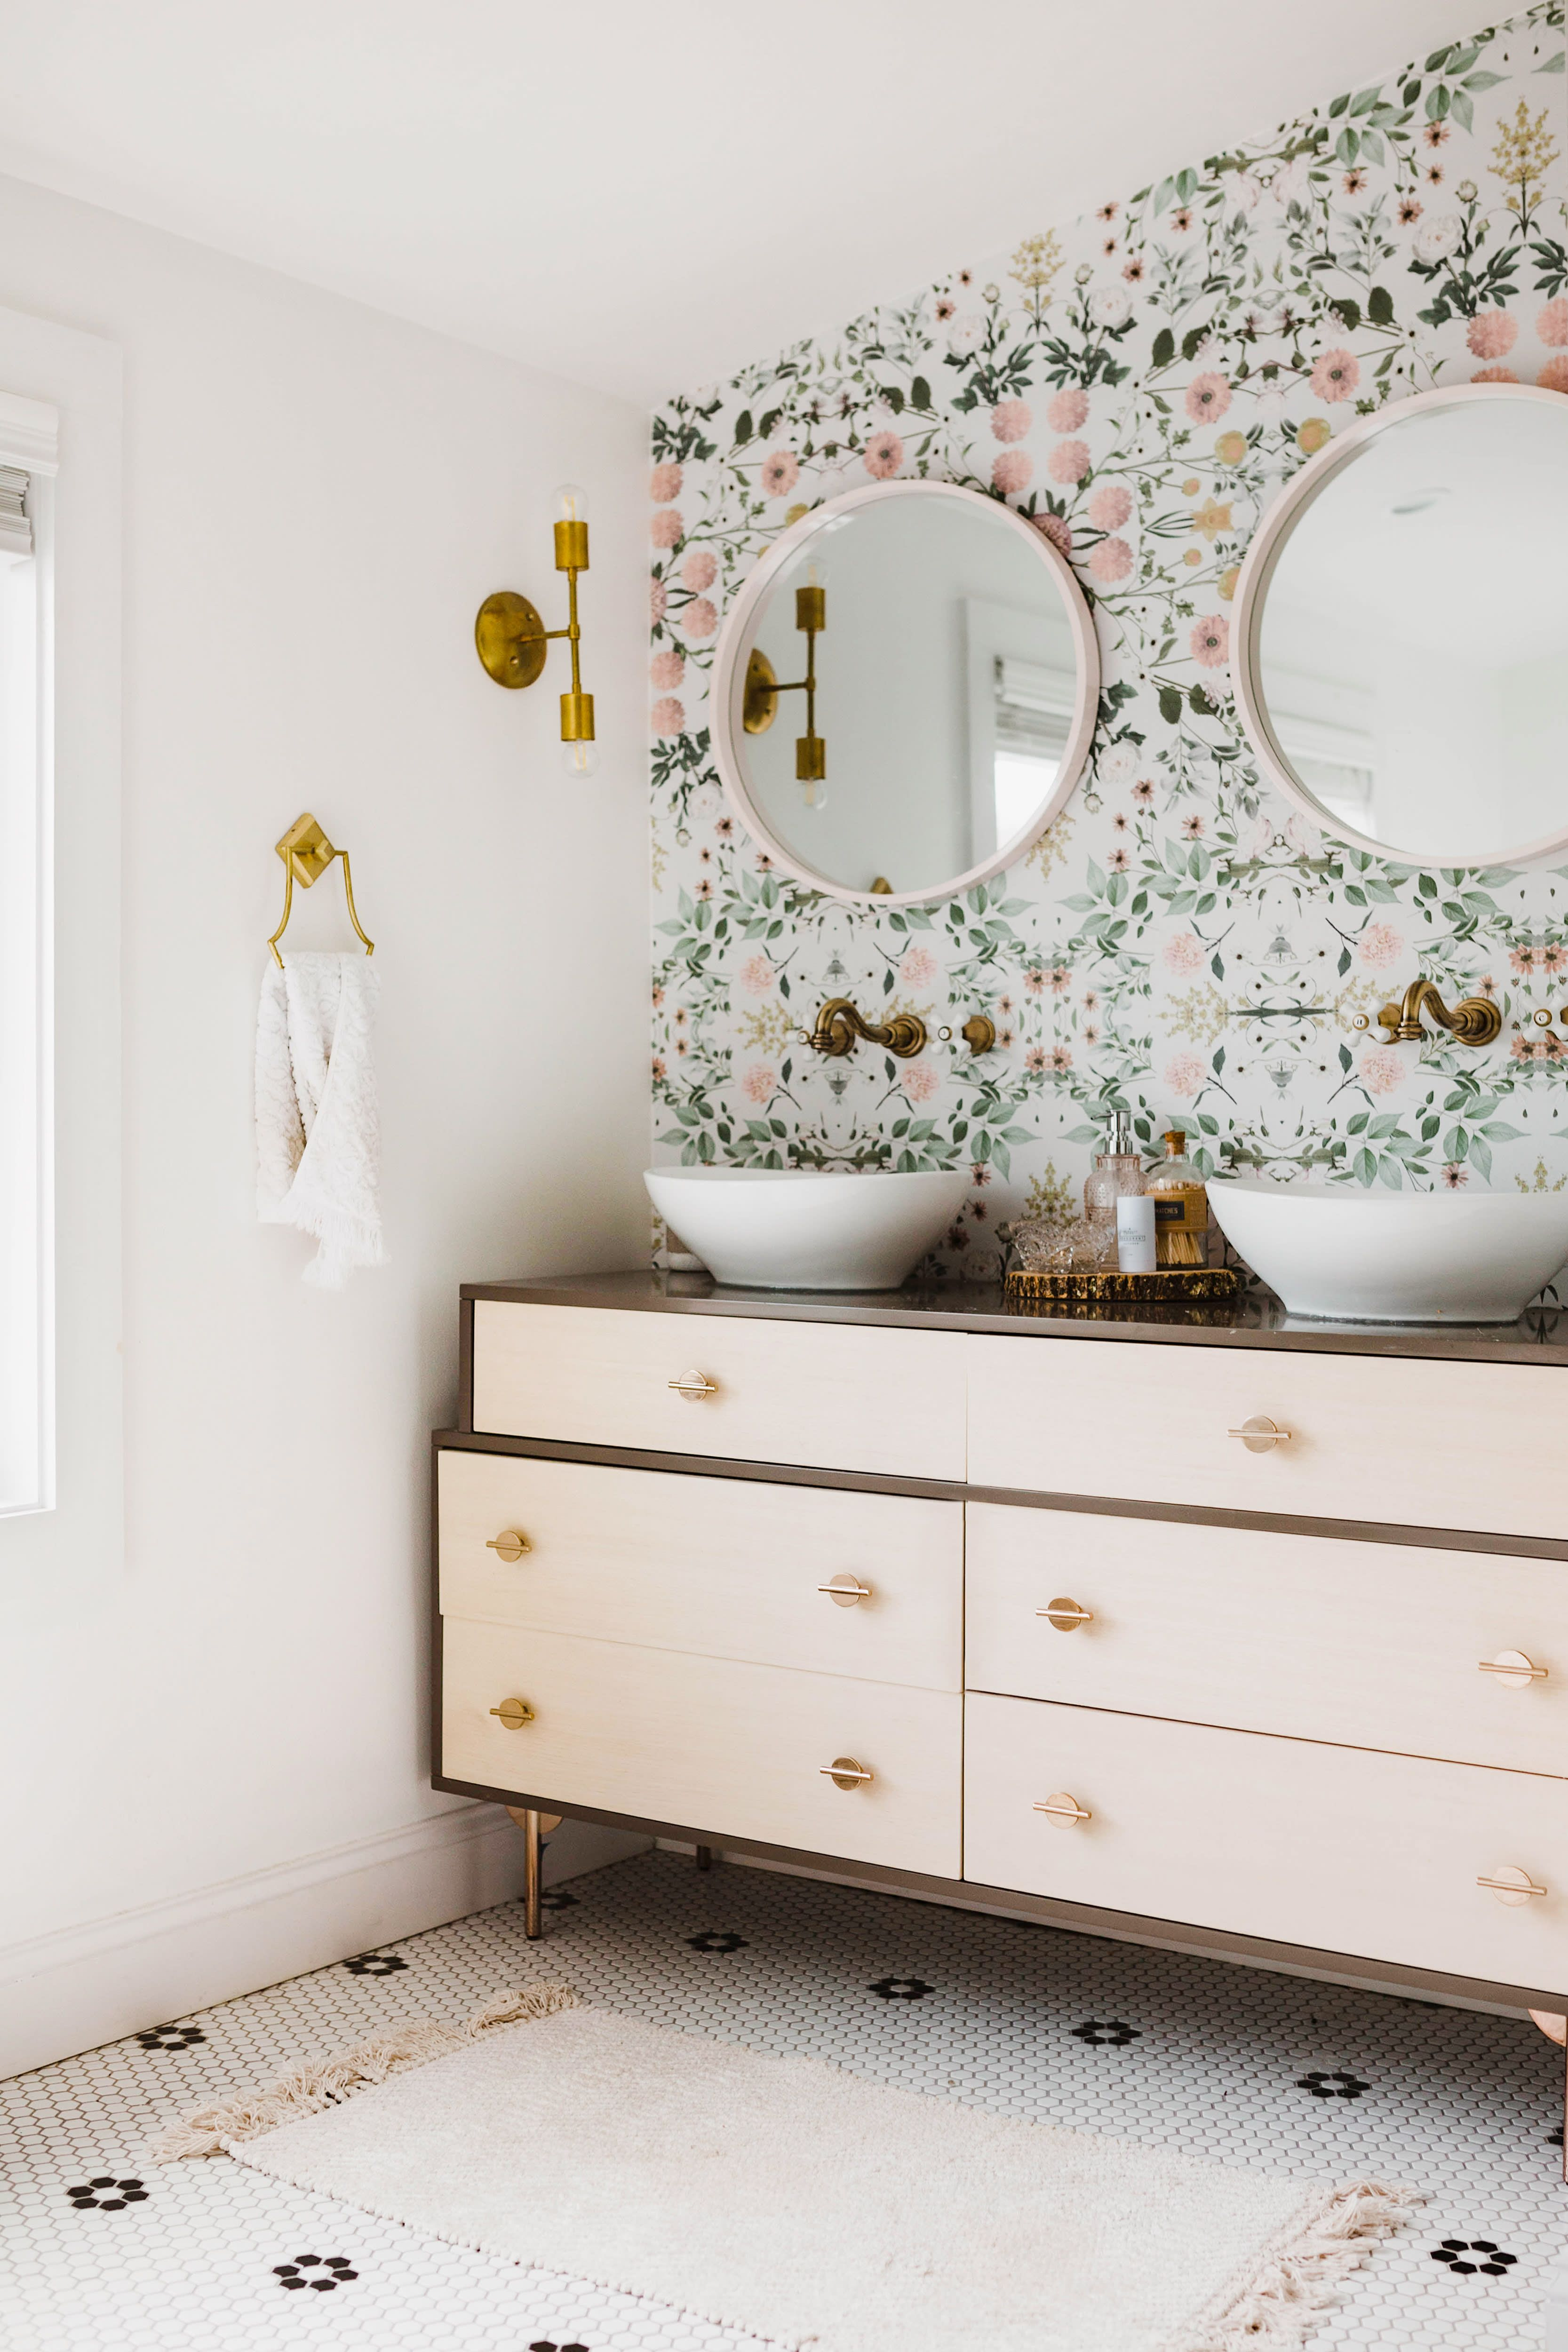 Tour a Renovated 1800s Townhome with a Knockout Master Bathroom